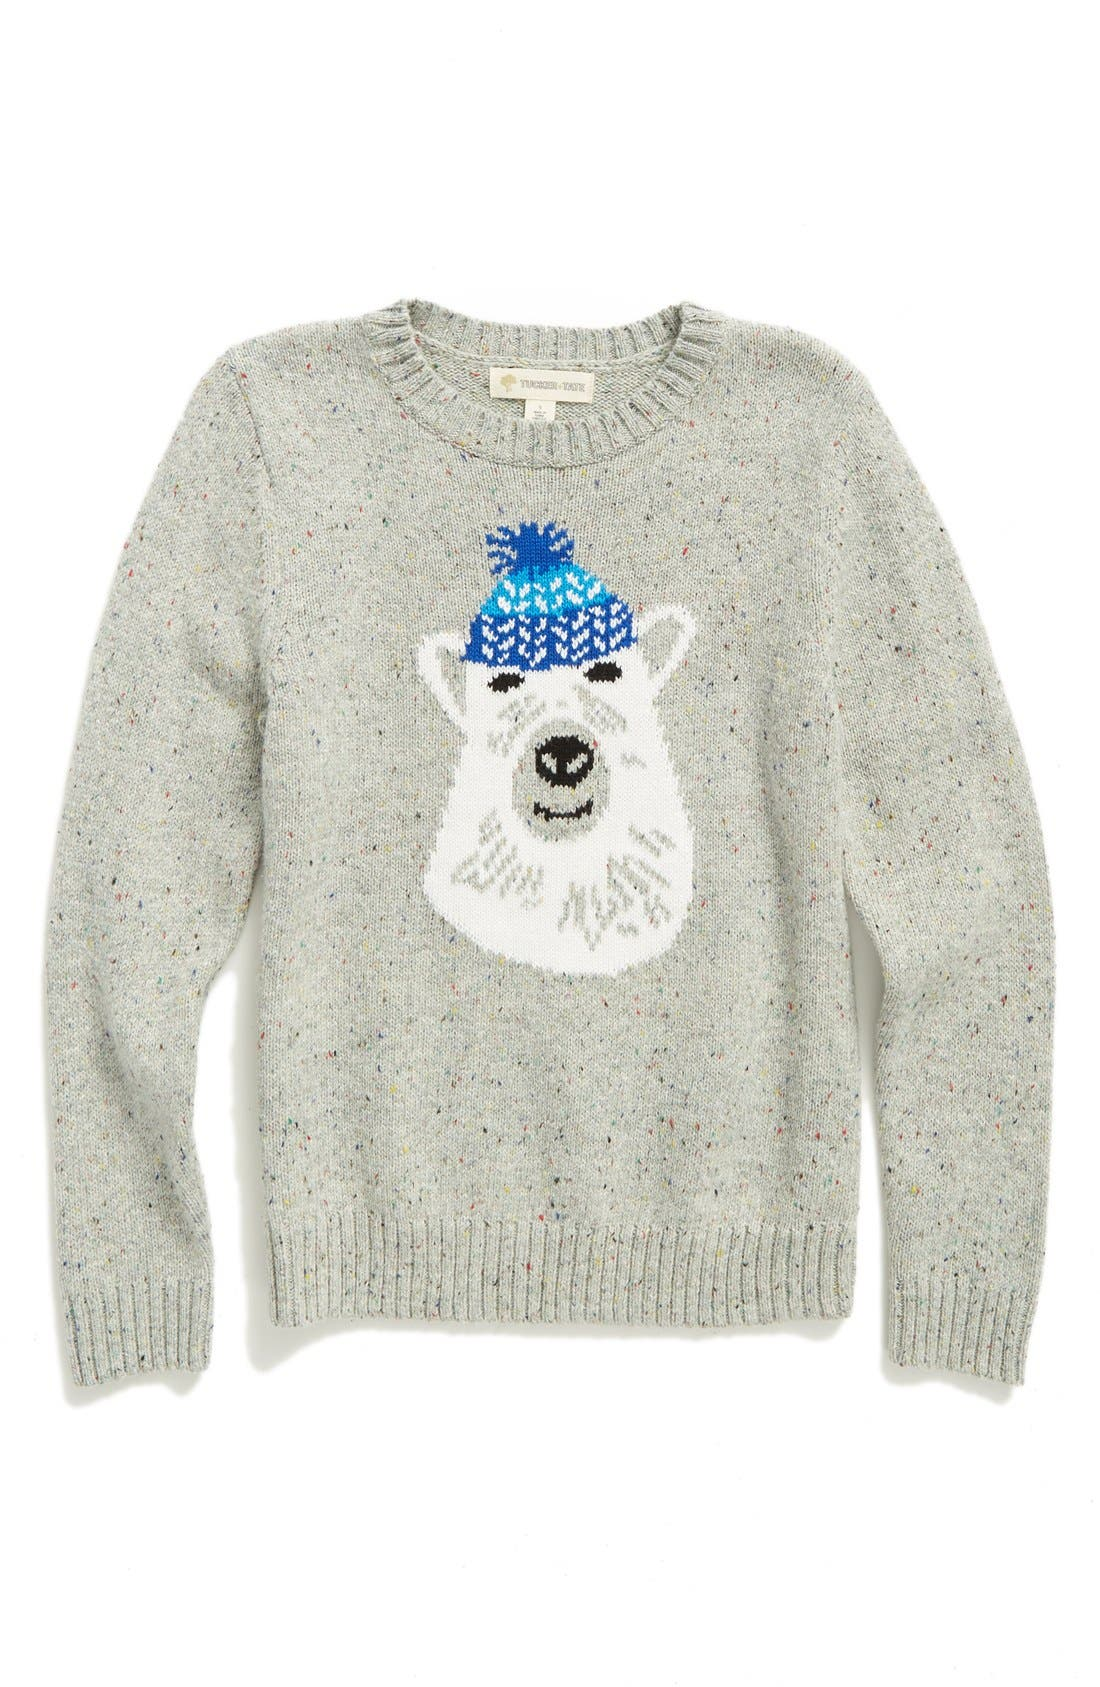 Alternate Image 1 Selected - Tucker + Tate Intarsia Knit Sweater (Little Boys)